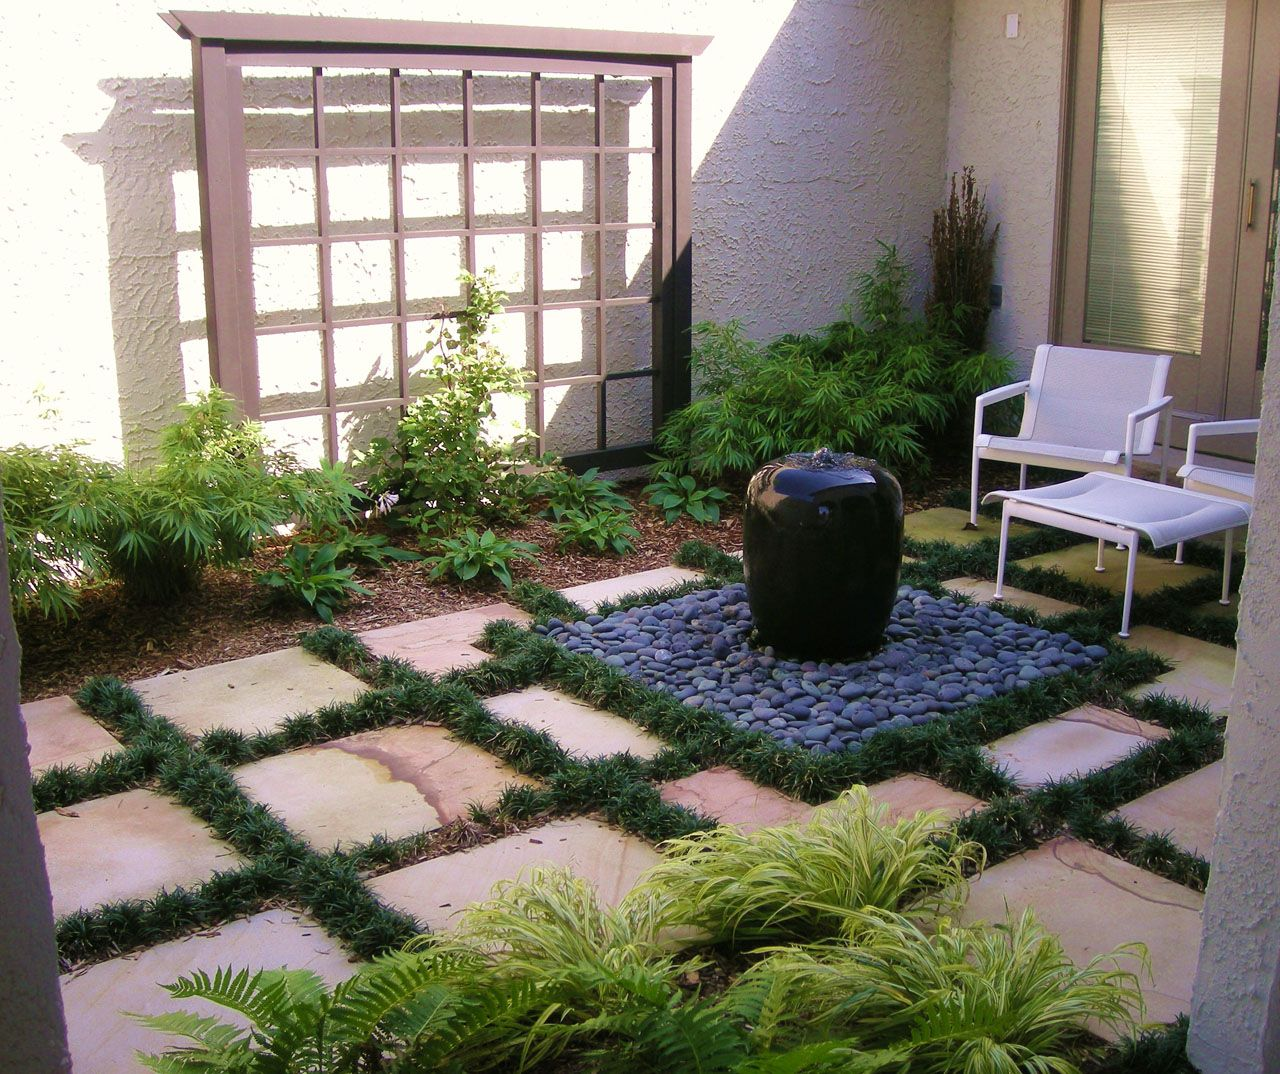 Simple Japanese Garden Design Gardenlawn Amp Gardenjapanese Garden Design Ideas For Small